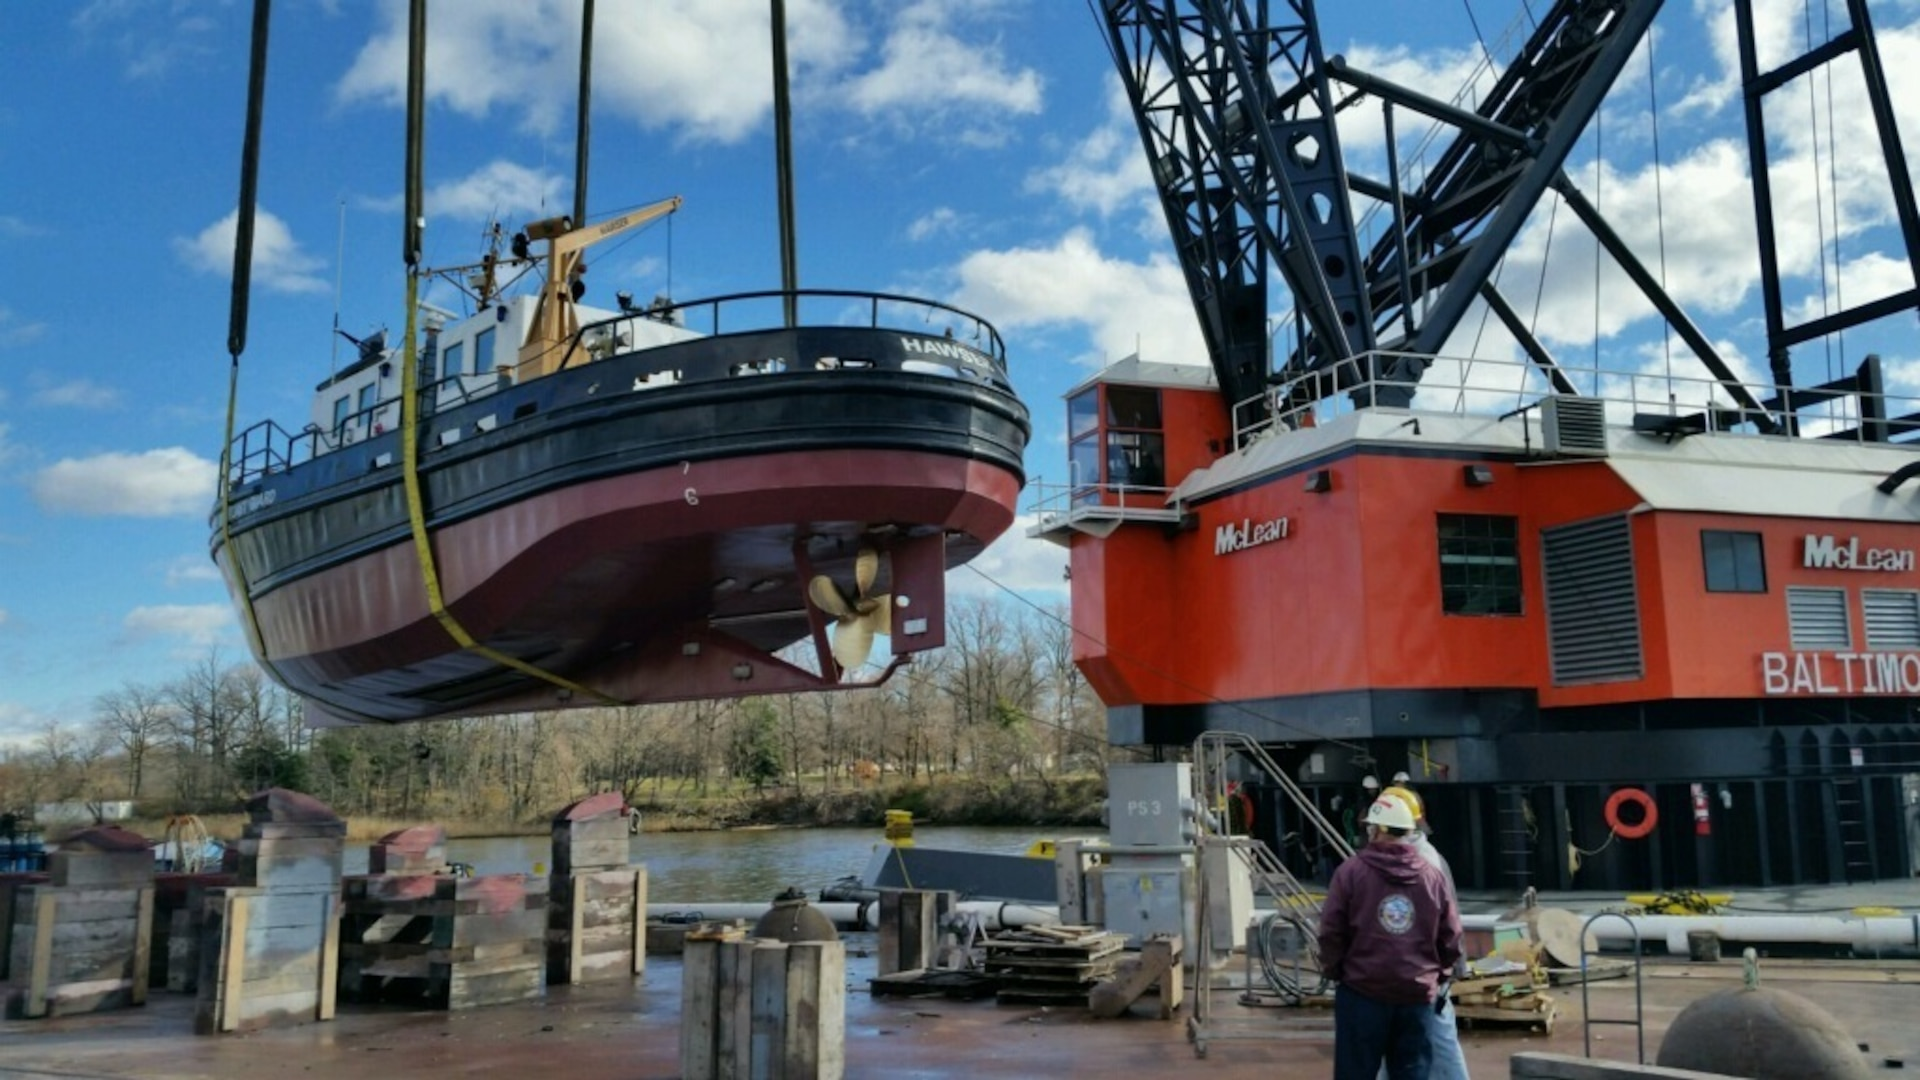 The Coast Guard Yard lifts the Coast Guard Cutter Hawser into the water to continue planned maintenance on the 65 foot small harbor tug home ported in Bayonne, N.J. Service to the fleet!